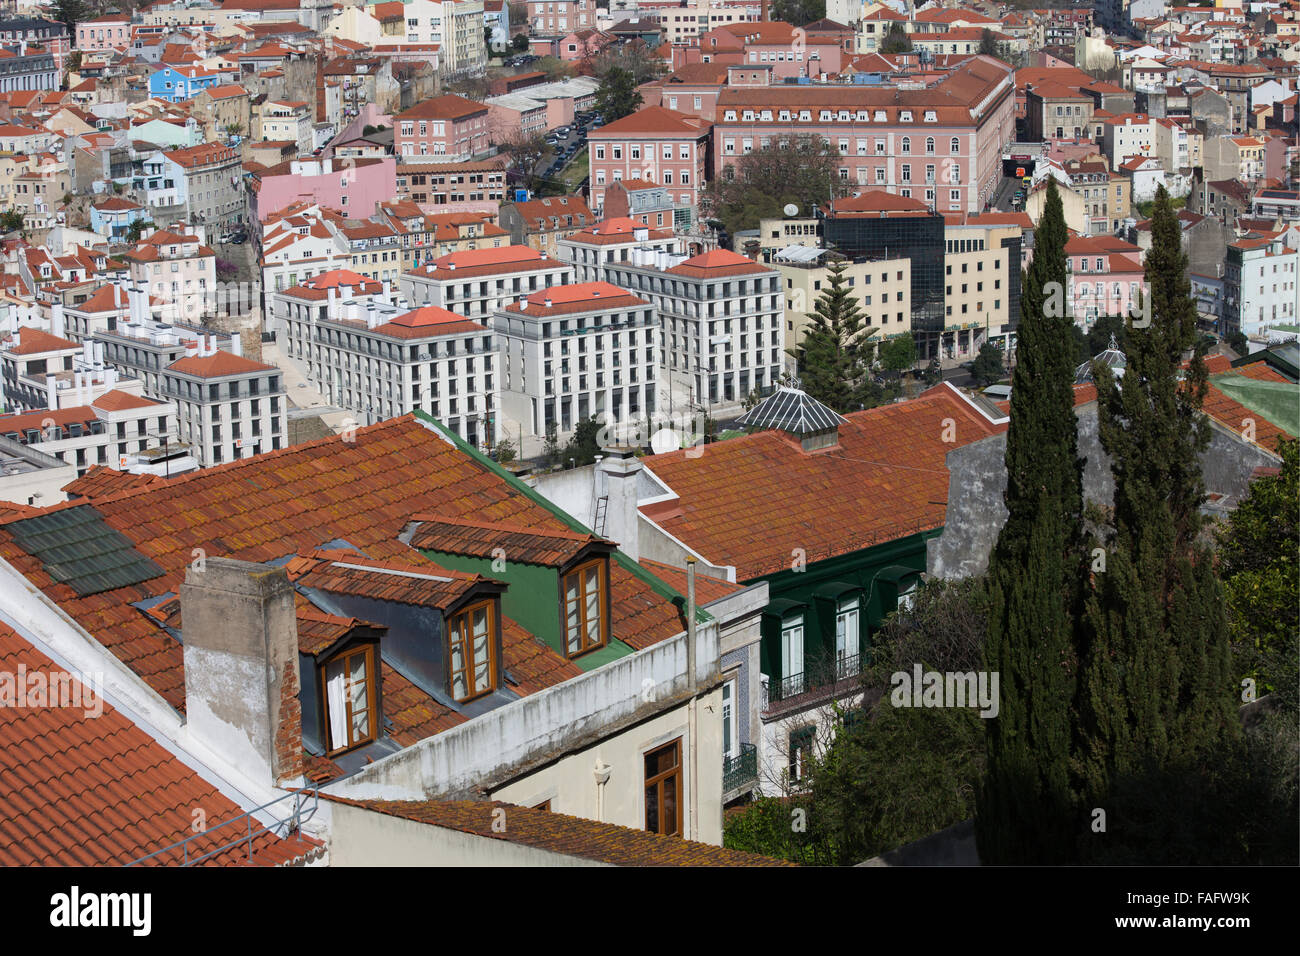 Portugal, Lisbon, city centre, cityscape Stock Photo